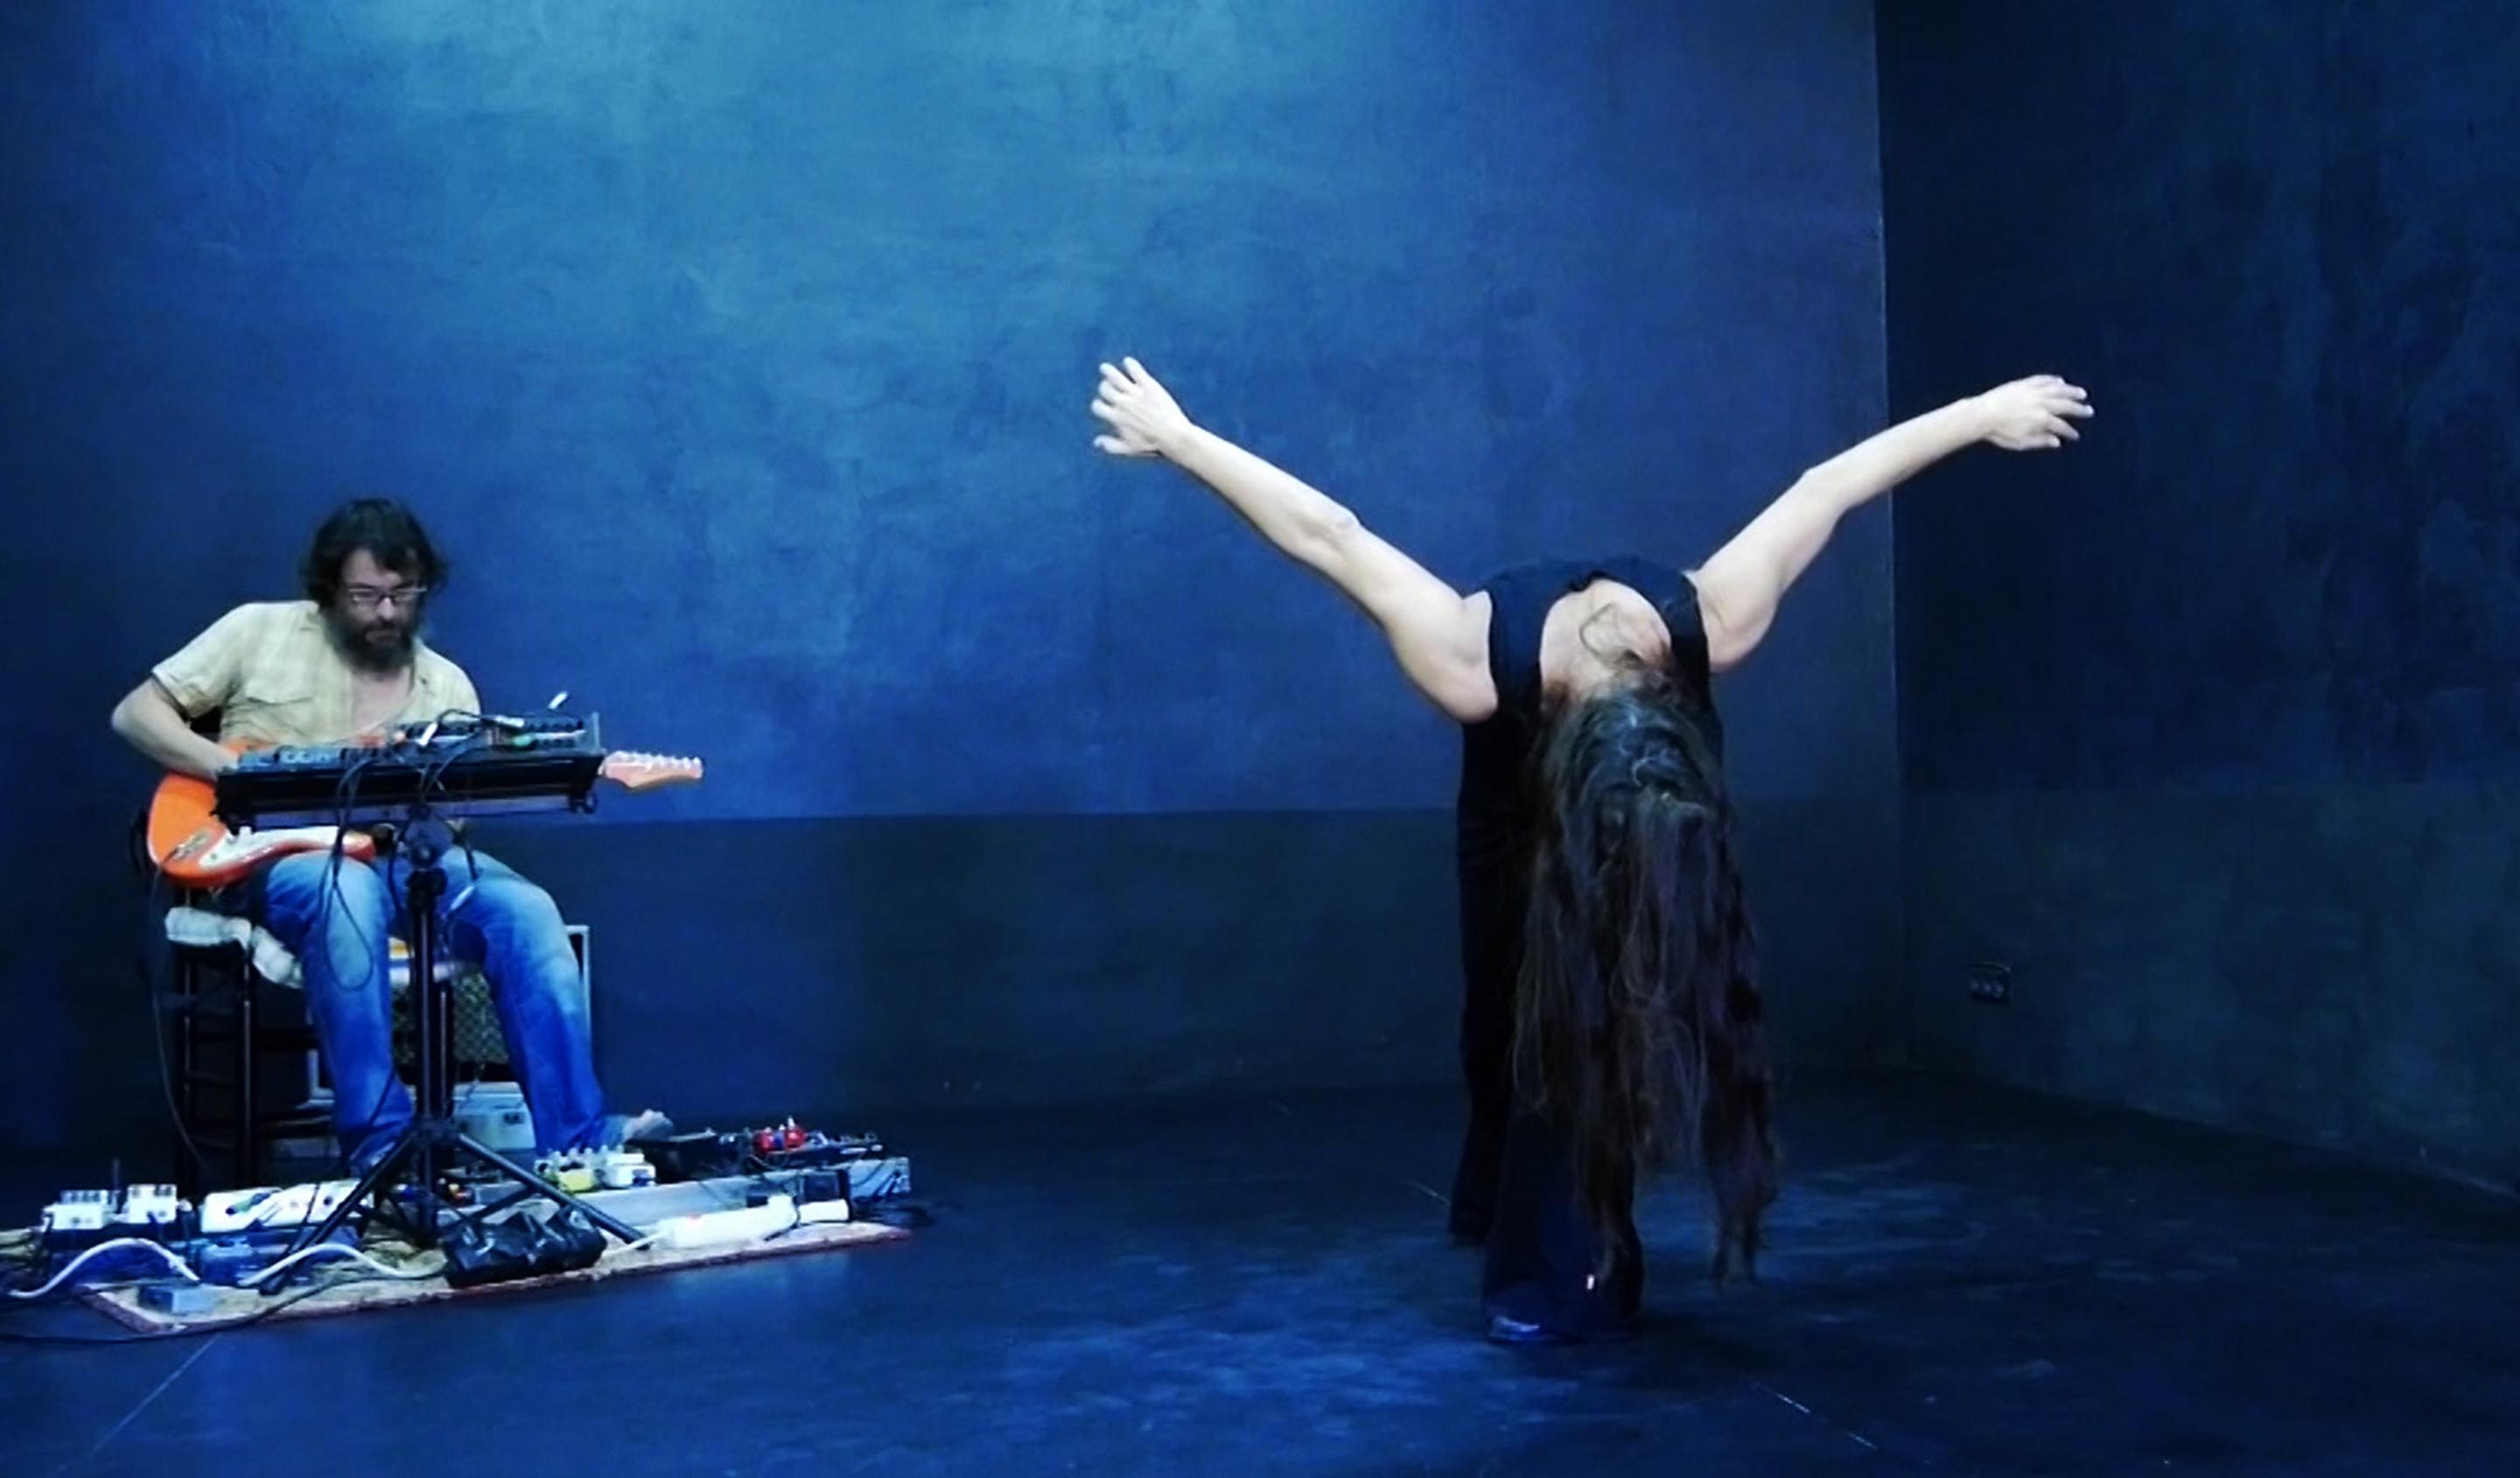 Surrounded by deep blue walls and floor, a person with long hair stands with arms out, bending very far forward while to their right another person plays guitar.